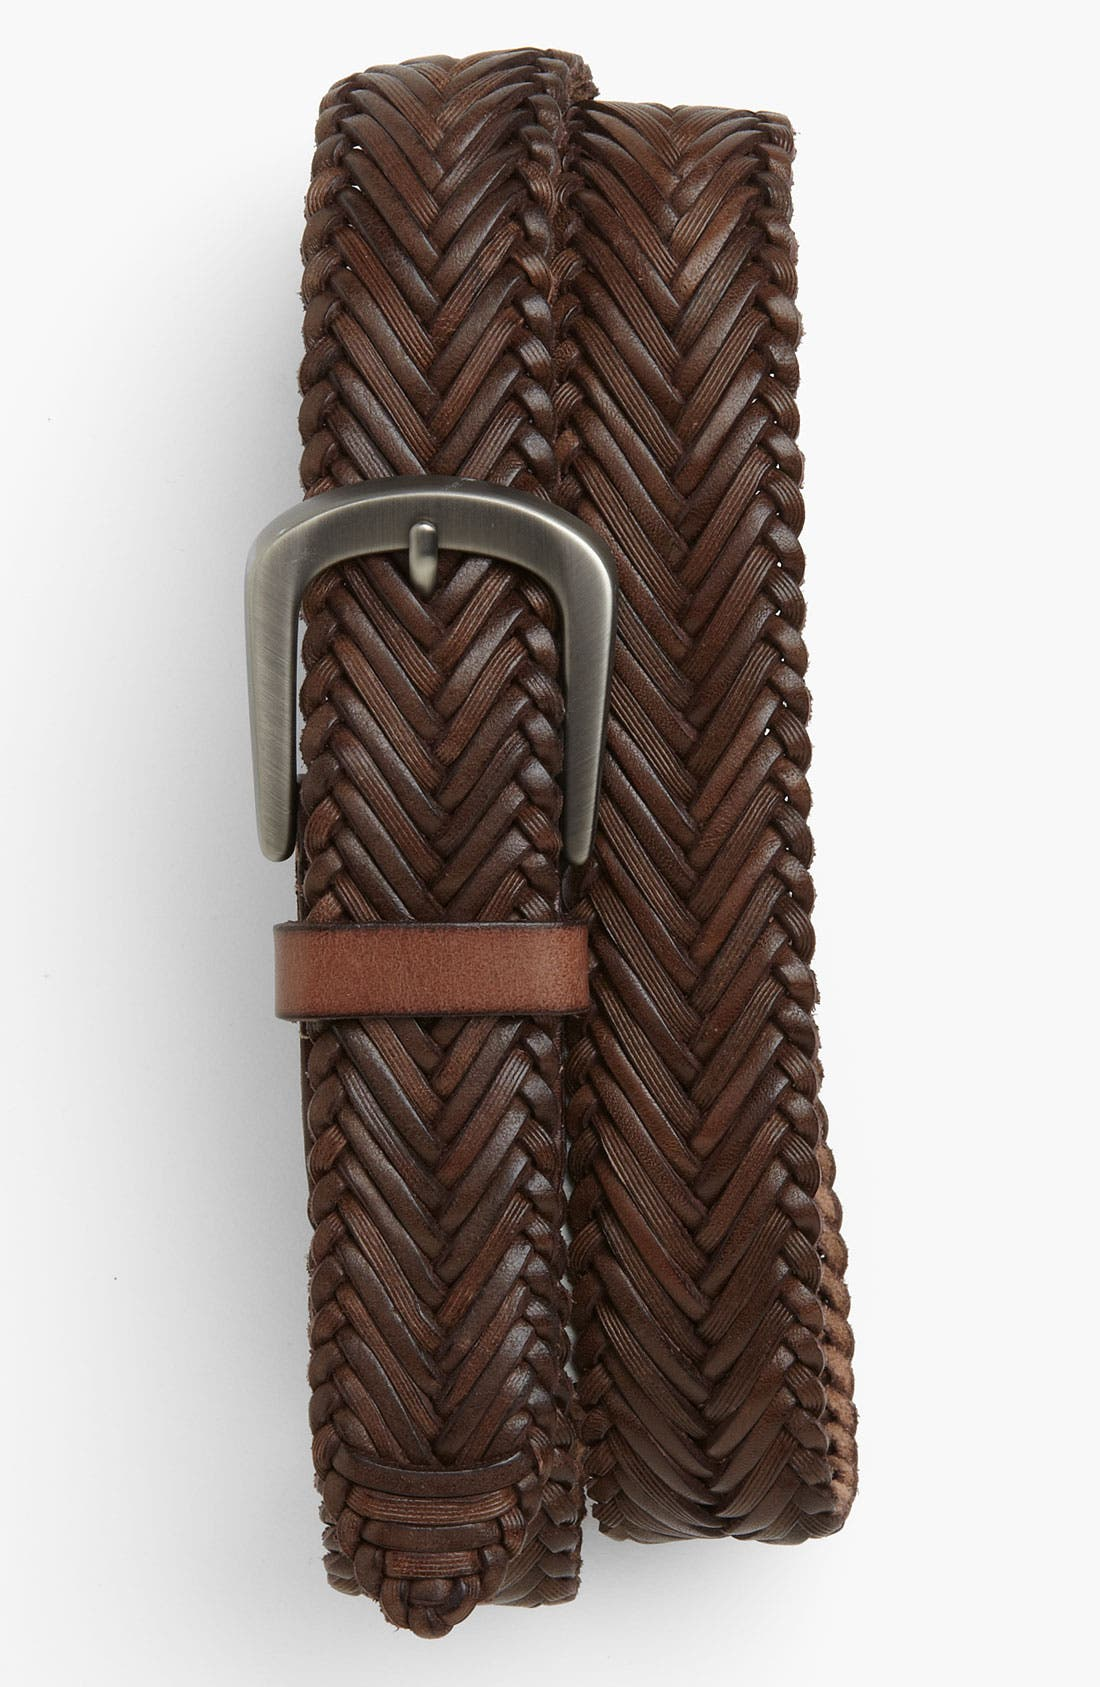 Alternate Image 1 Selected - Tommy Bahama 'Antonio' Braided Belt